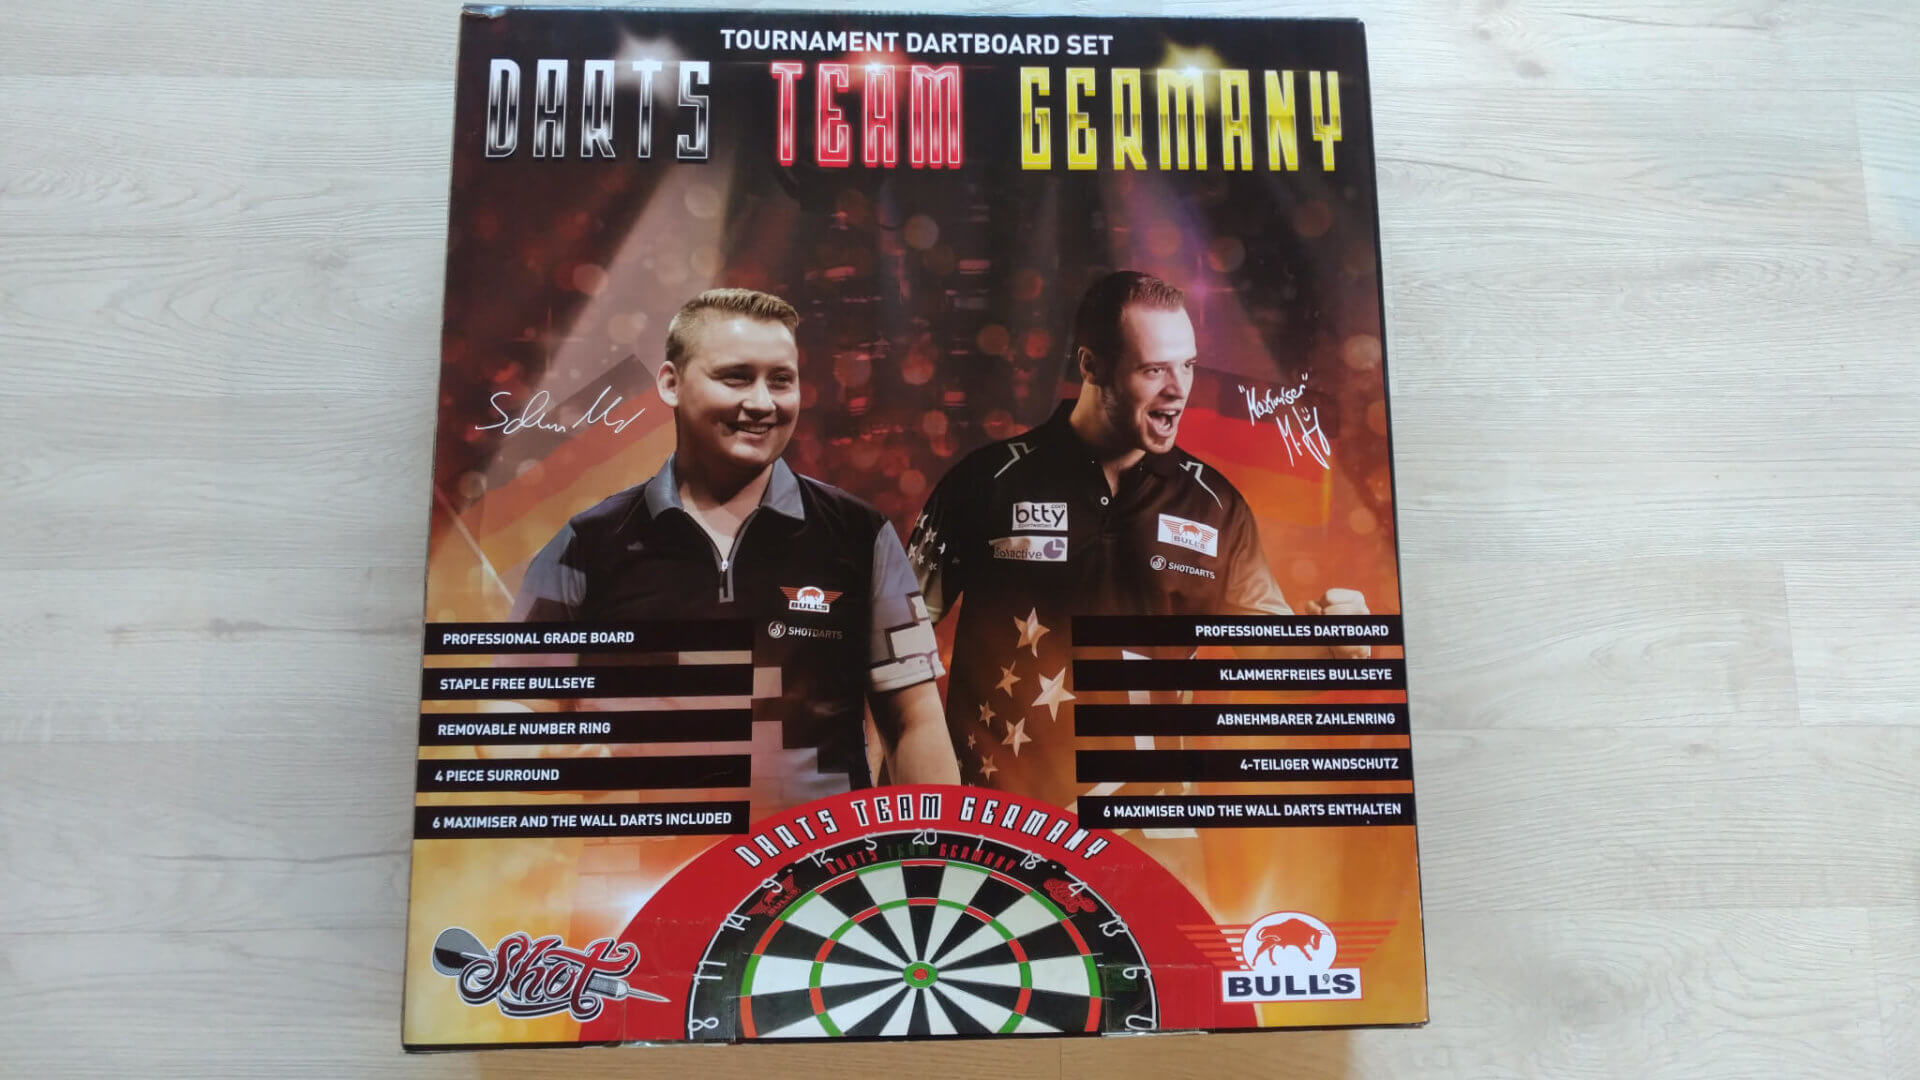 Bull's NL - Team Germany Darts Set